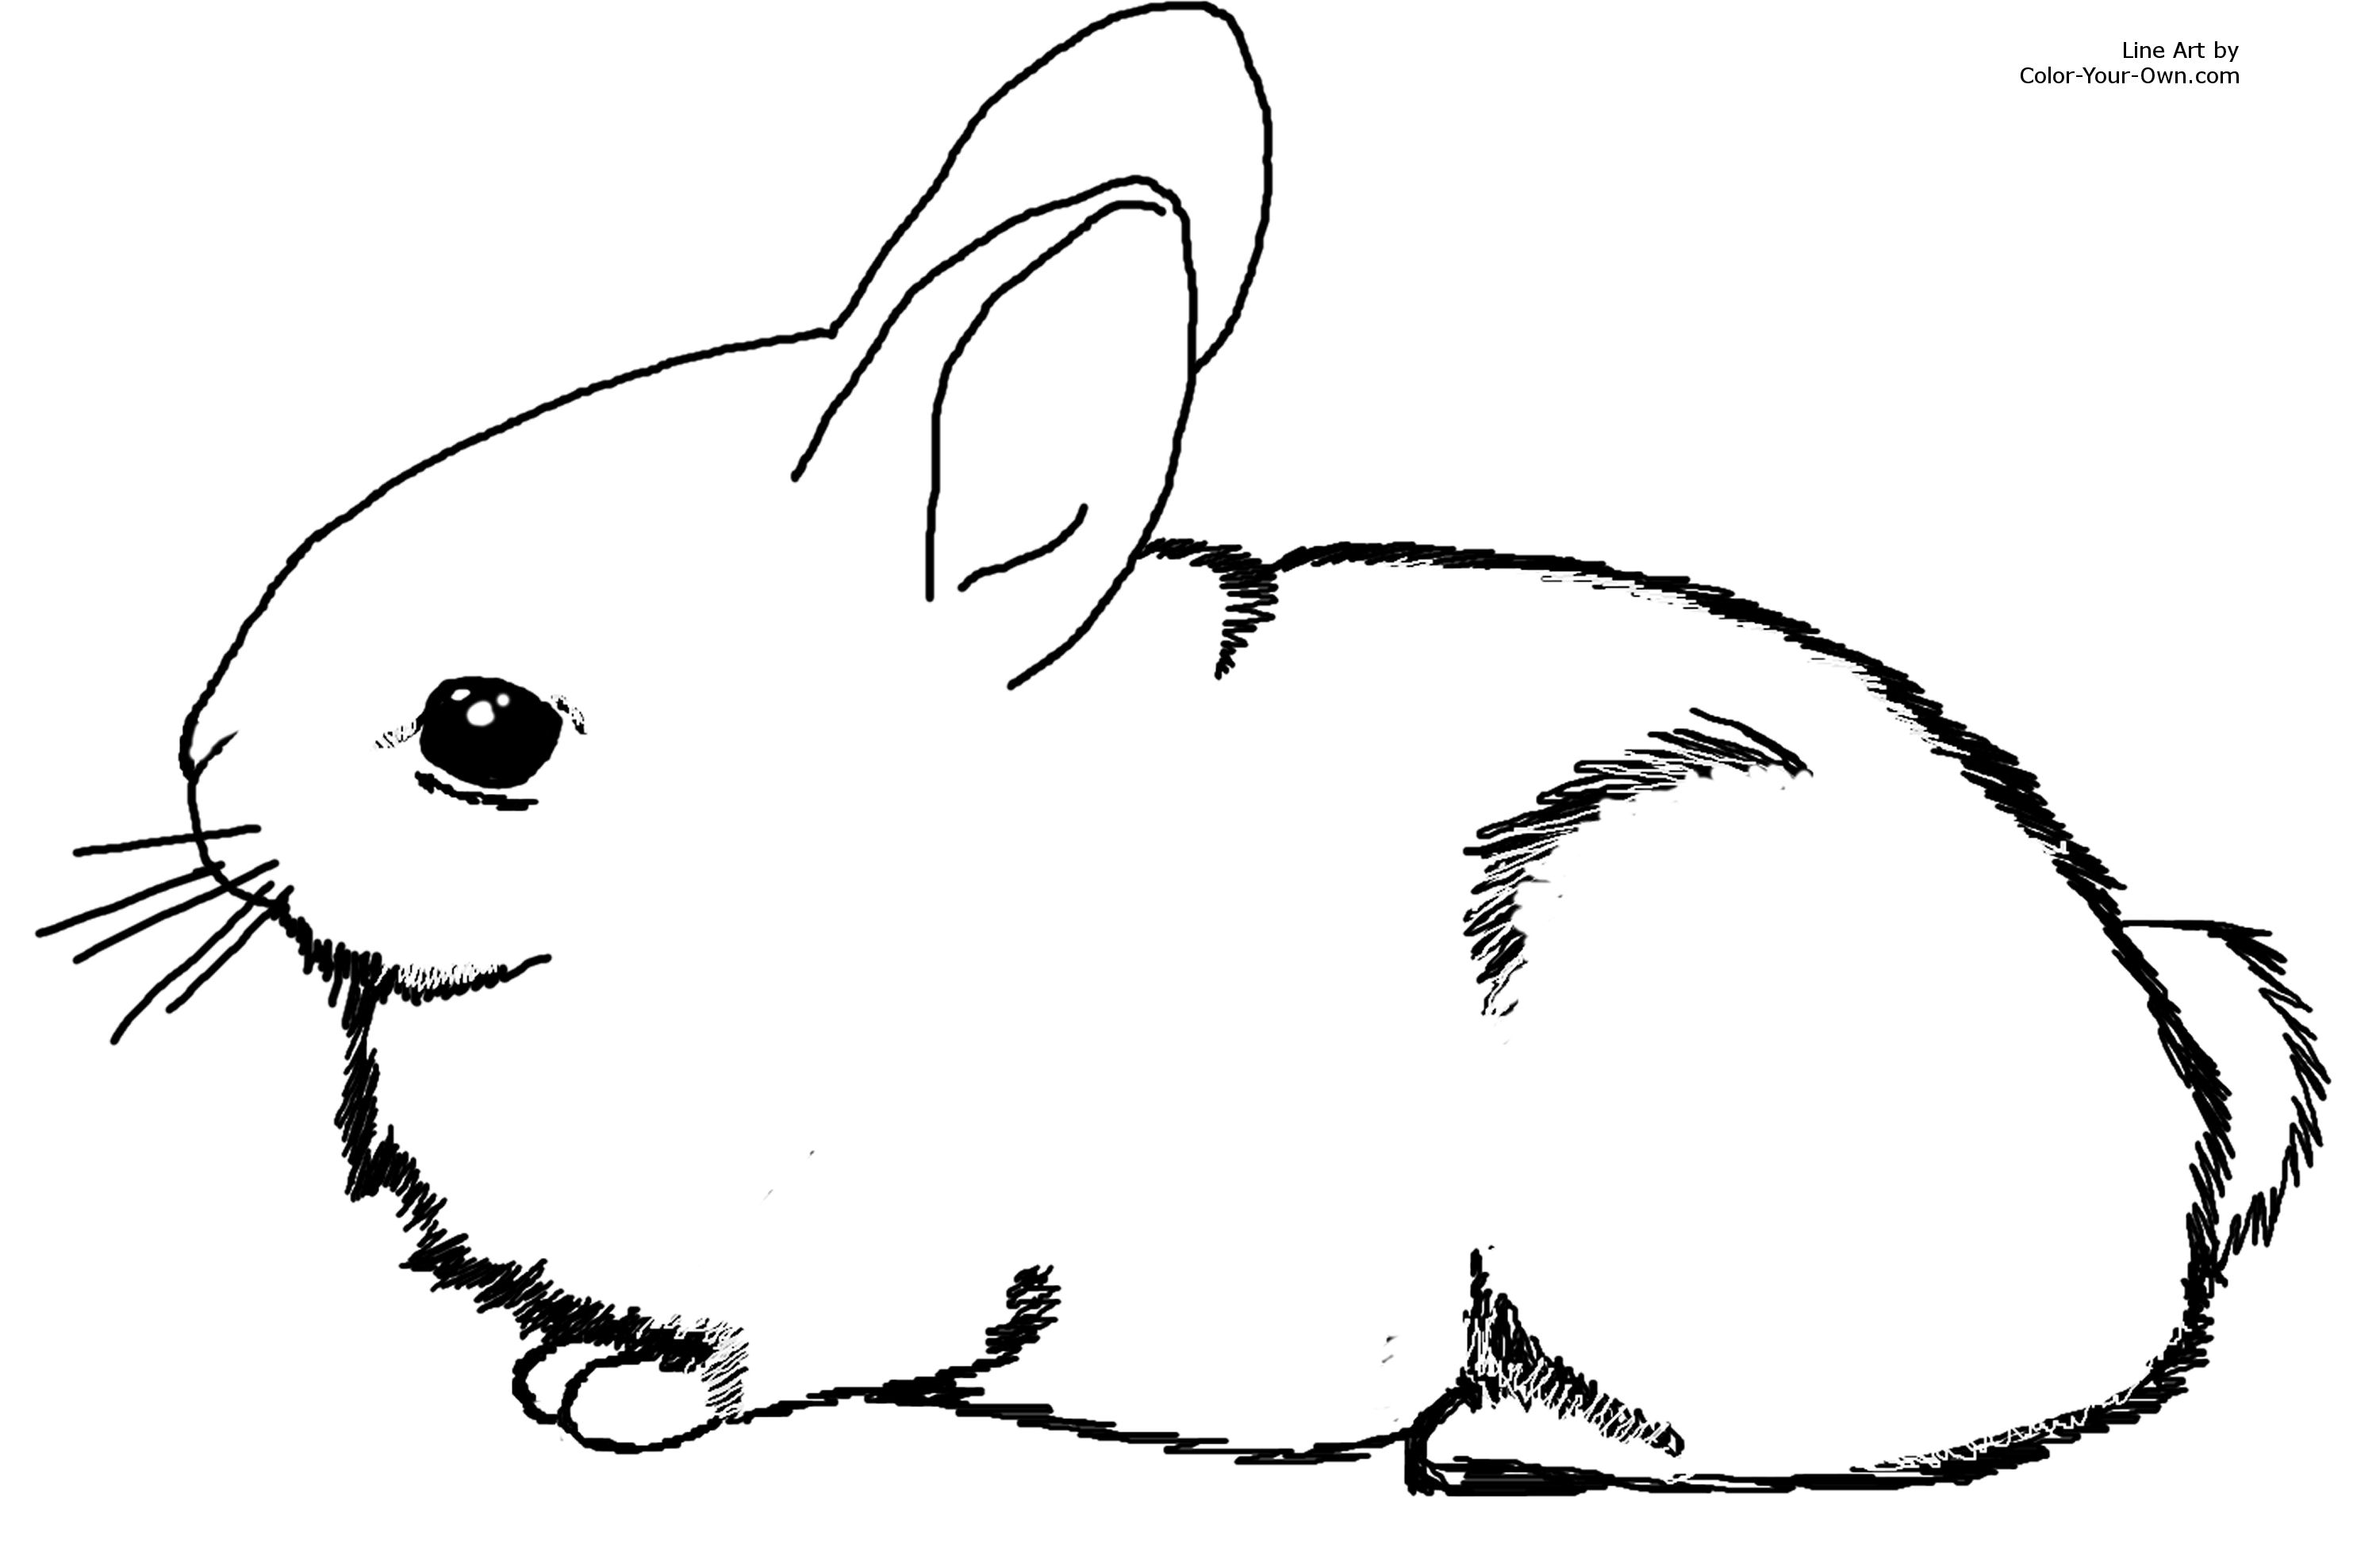 Uncategorized Rabbit Coloring Pages Free Printable adorable baby cottontail rabbit bunny coloring page printable size click here return to the pages index